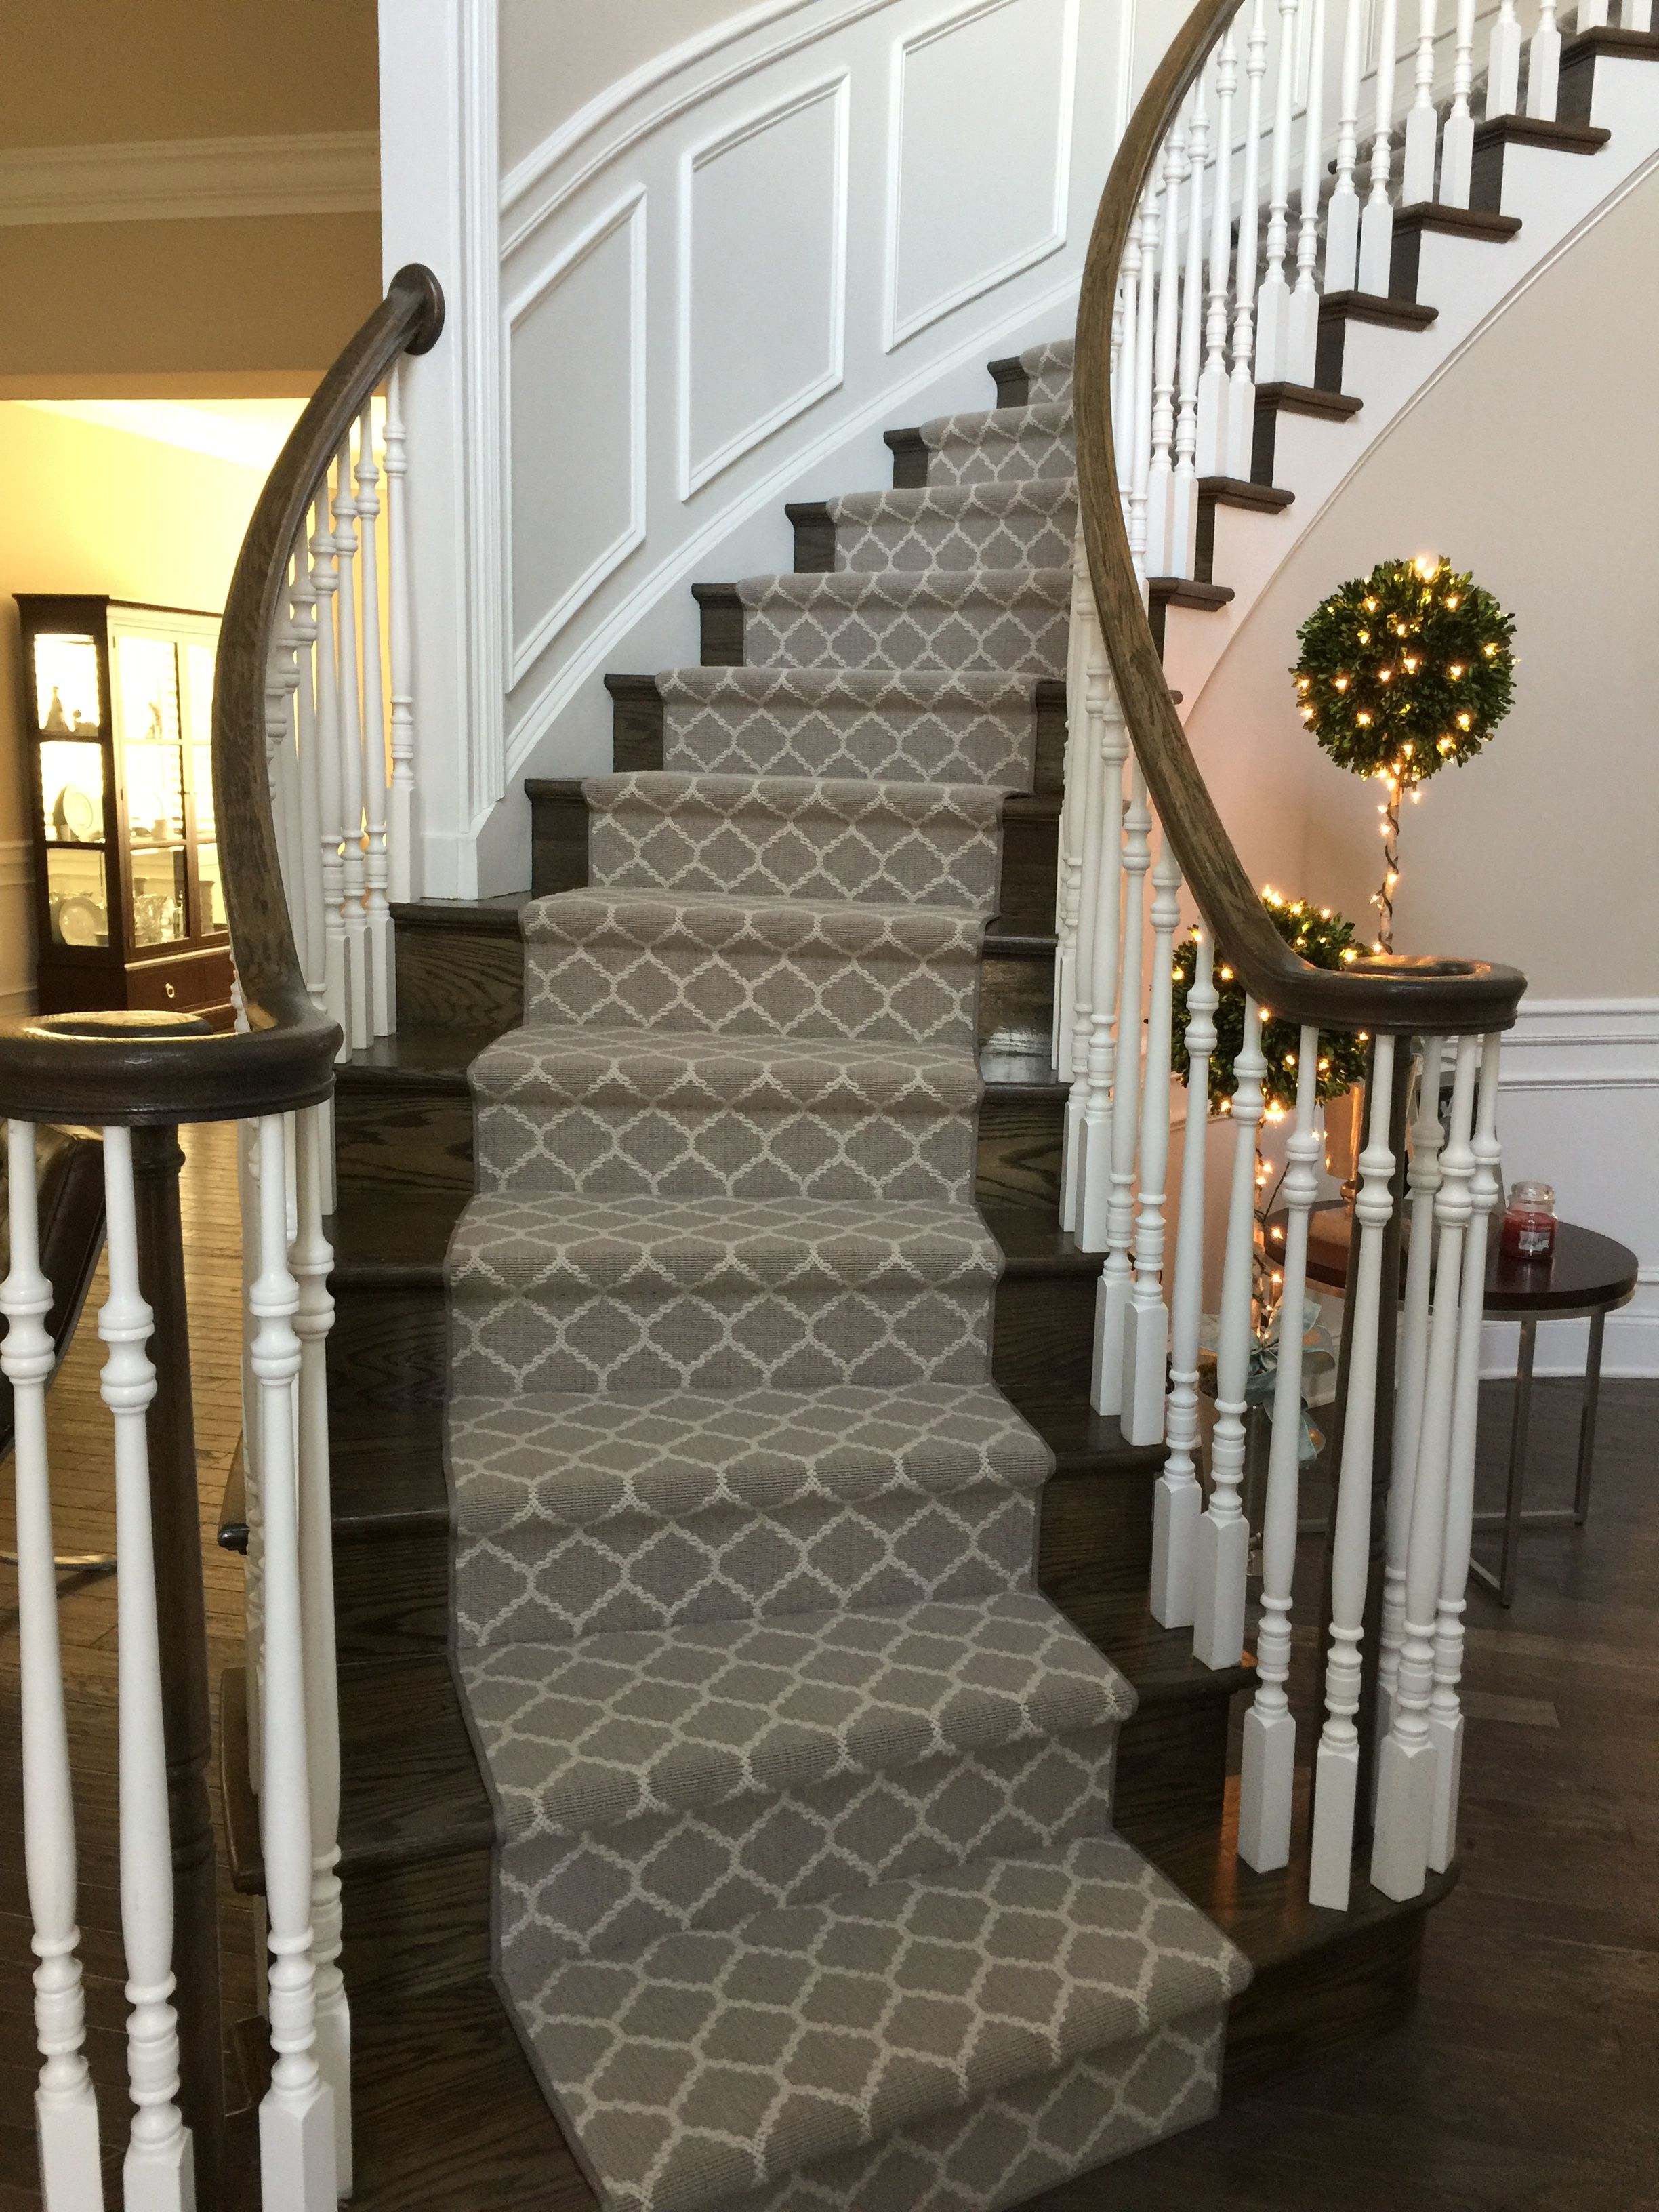 Carpet Runner On Curved Staircase Stairway Carpet Stair Runner Carpet Carpet Stairs